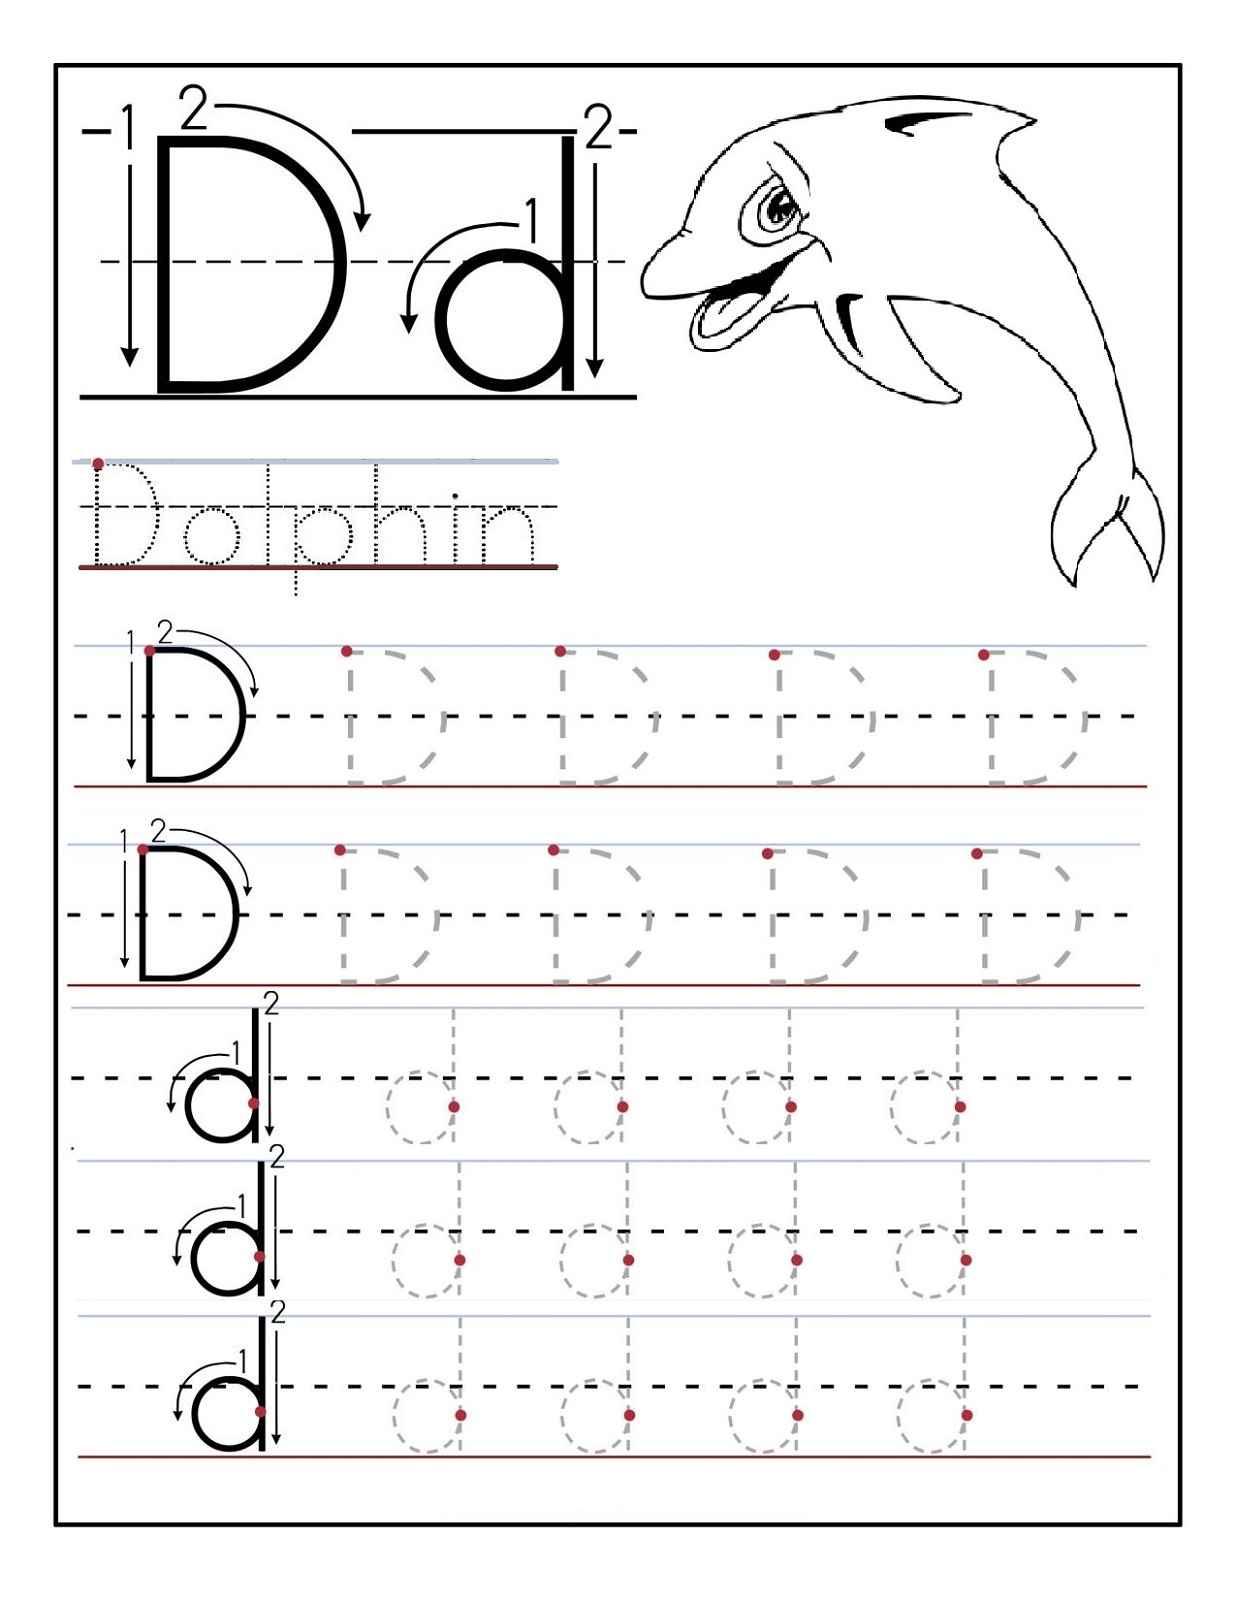 Worksheet Trace Letter D trace letter d worksheets activity shelter dolphin